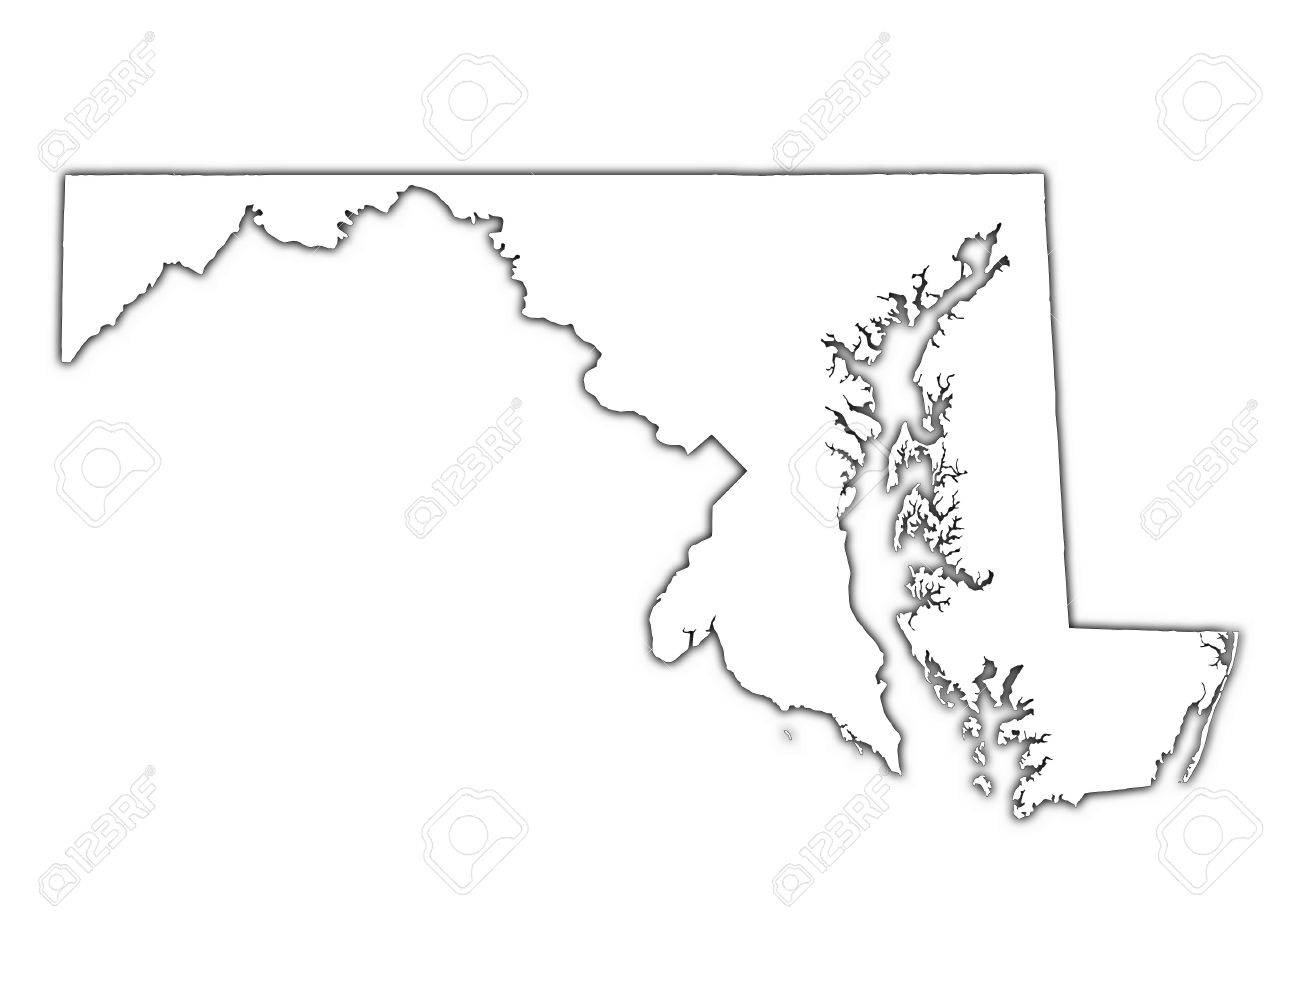 Prewiev Of USA Vector Map Mercator Projection Choosing The Right - Us map mercator